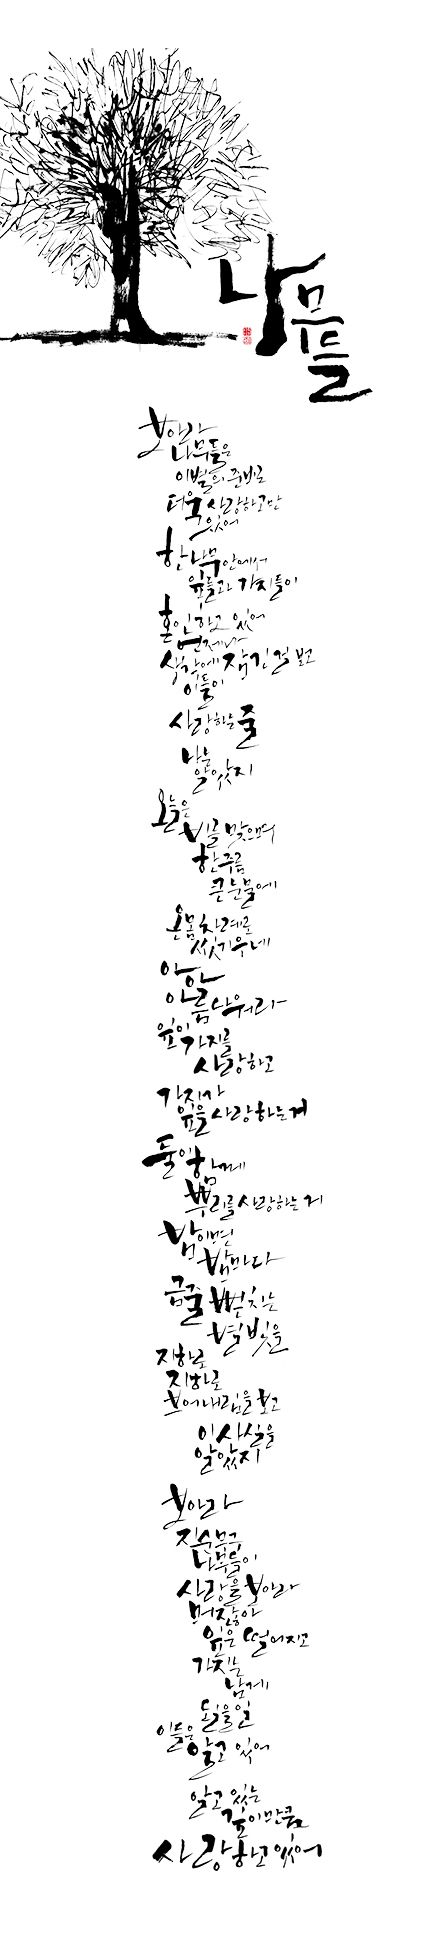 "Korean calligraphy - Poem ""Trees"" 나무들 by Kim Namjo 김남조"